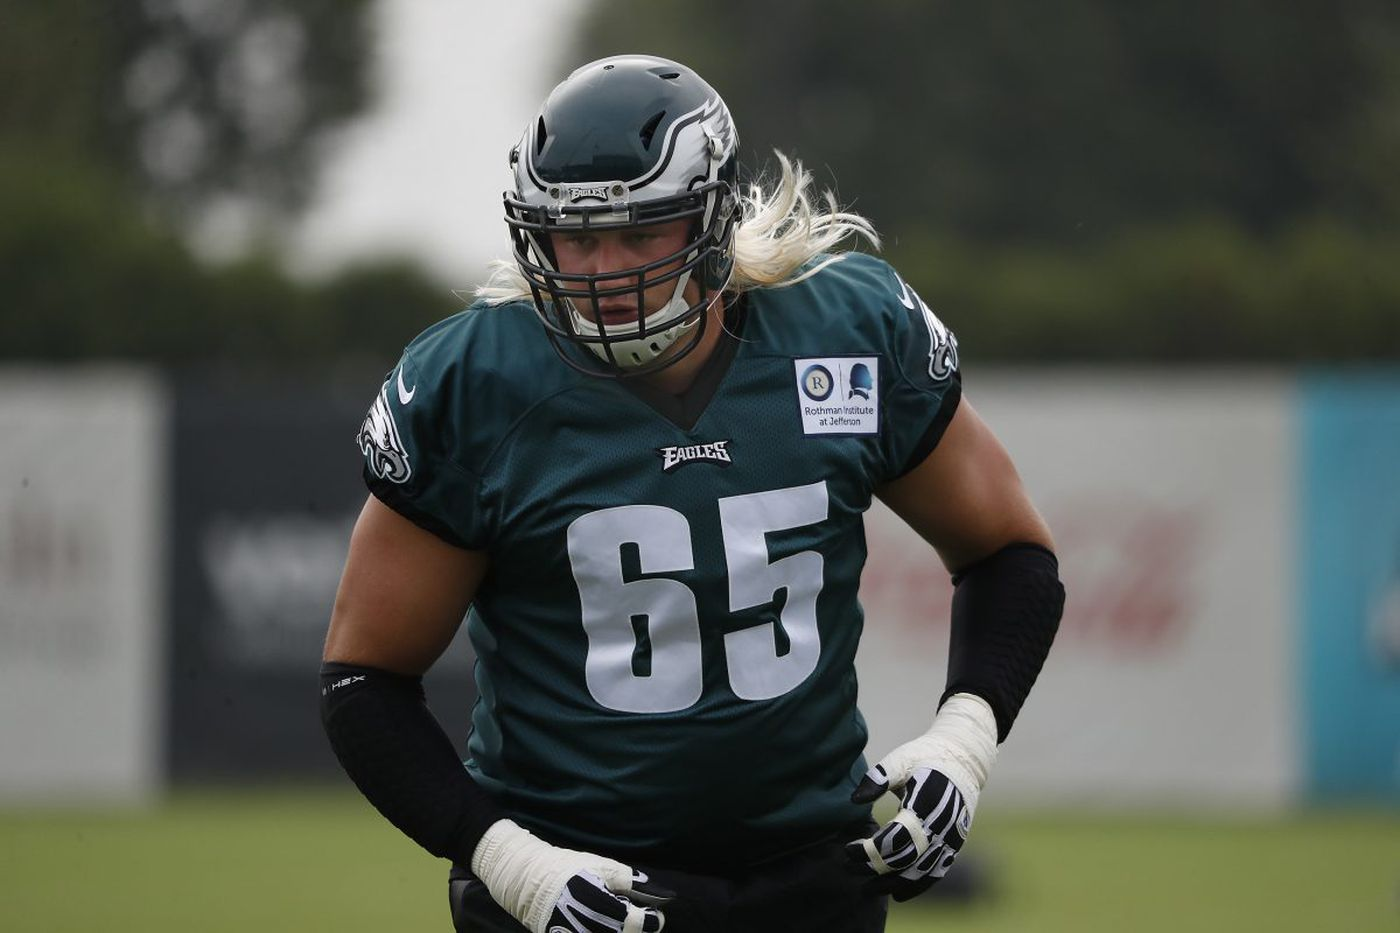 The best? Probably not, but Eagles offensive line could be very good